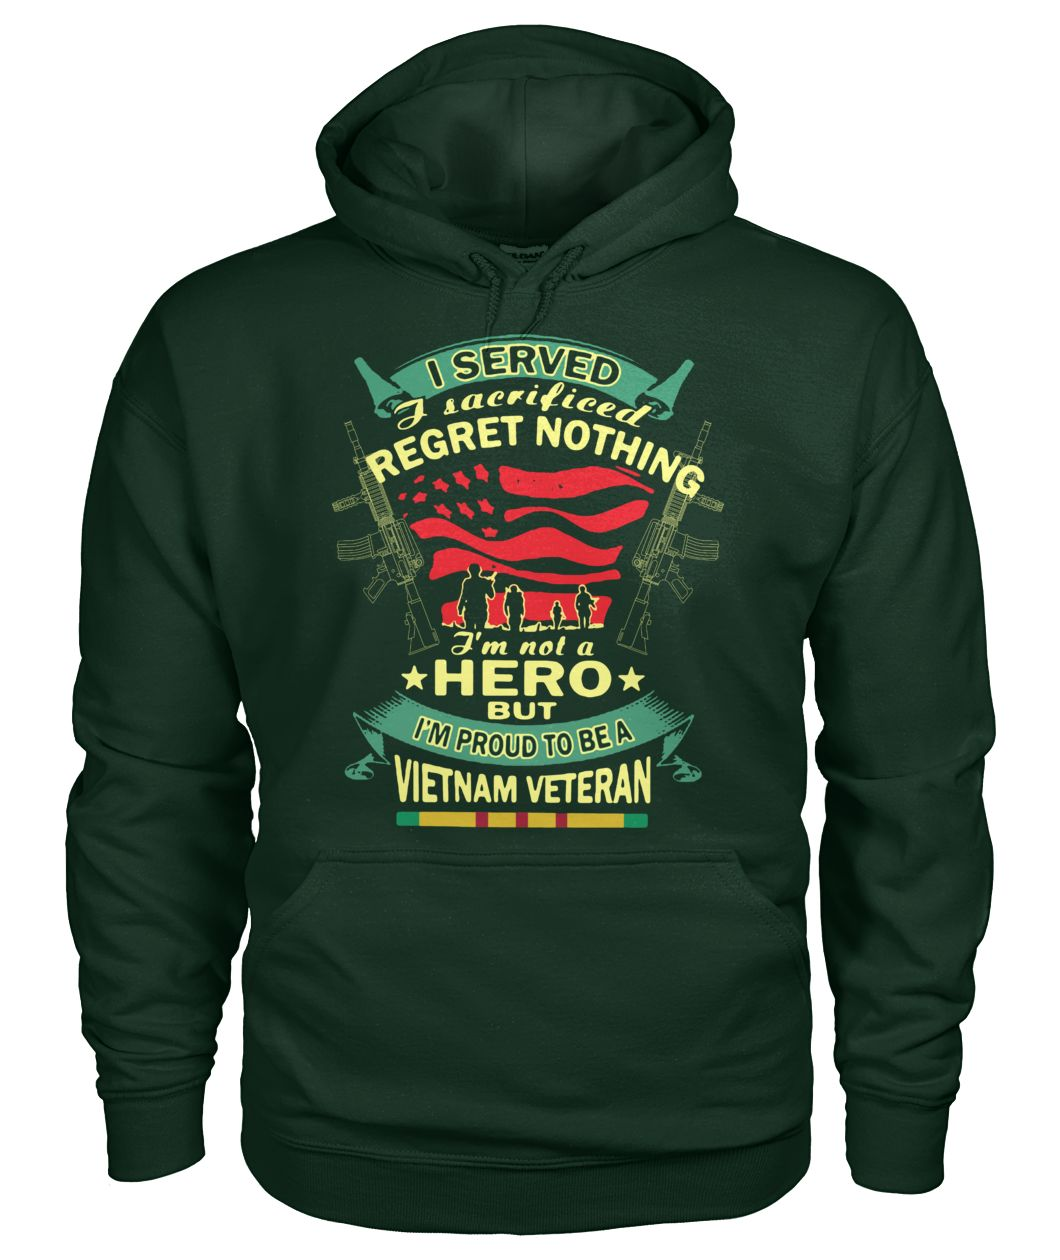 I served I sacrificed I regret nothing I'm not a hero but I'm proud to be a Vietnam veteran gildan hoodie